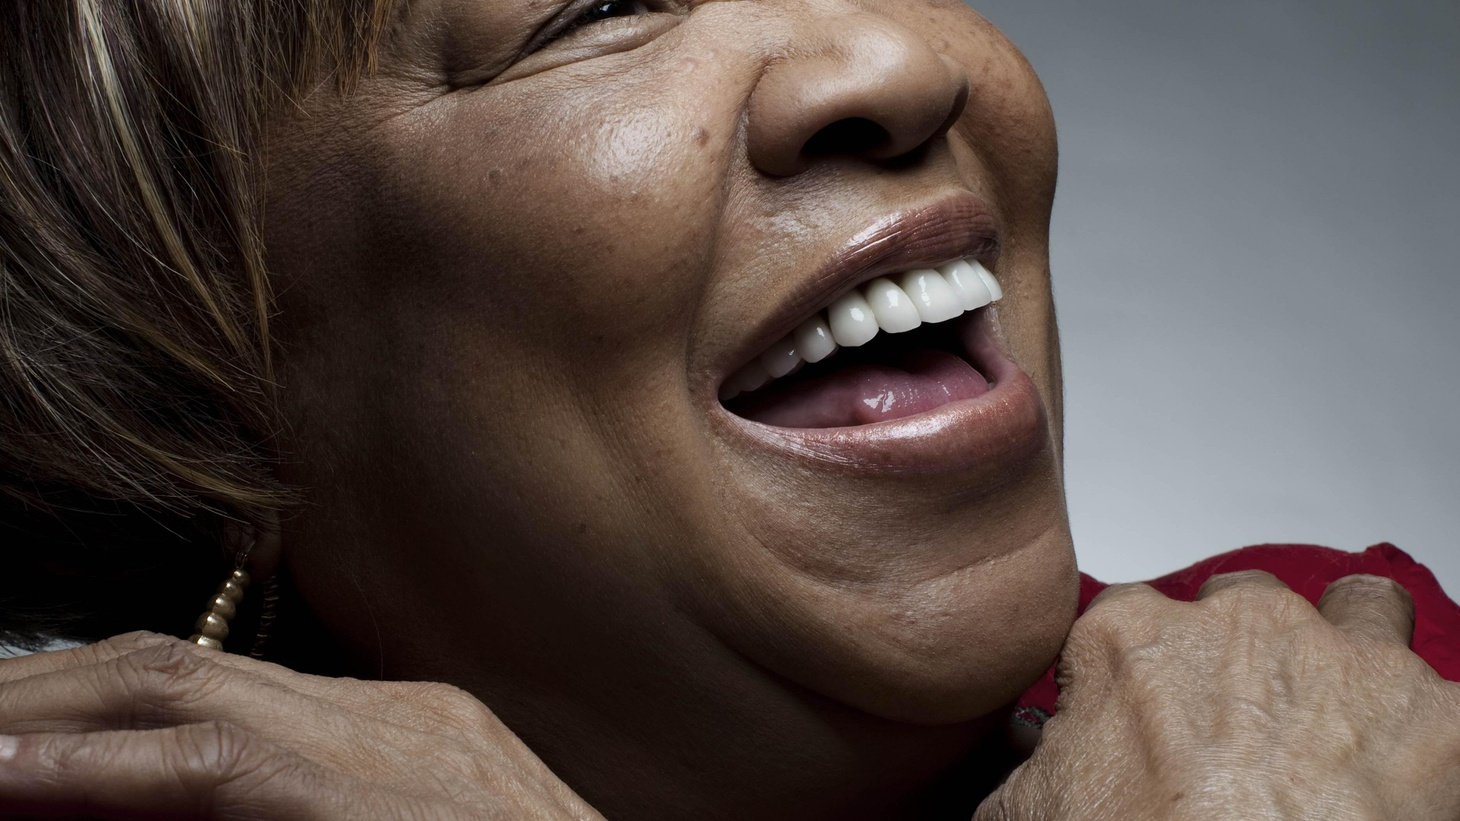 Music legend Mavis Staples stops by Morning Becomes Eclectic to share a few of her favorite songs in a Guest DJ set in the 10 o'clock hour.